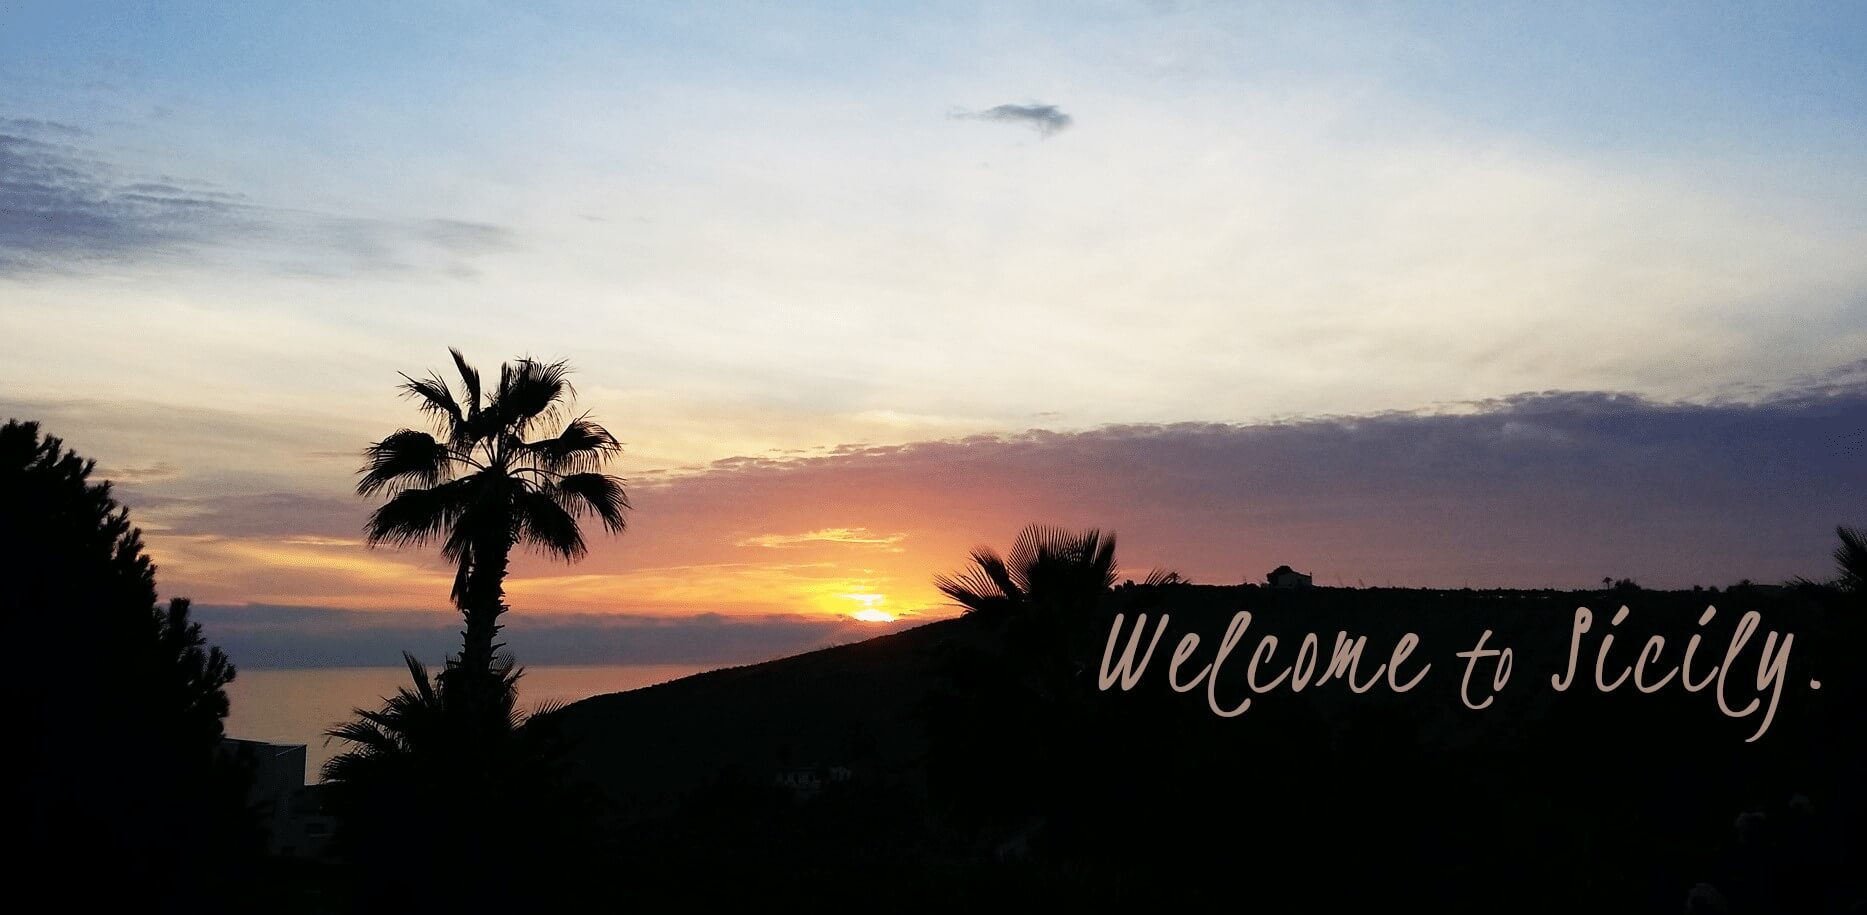 Benvenuti in Sicilia - Welcome to Sicily